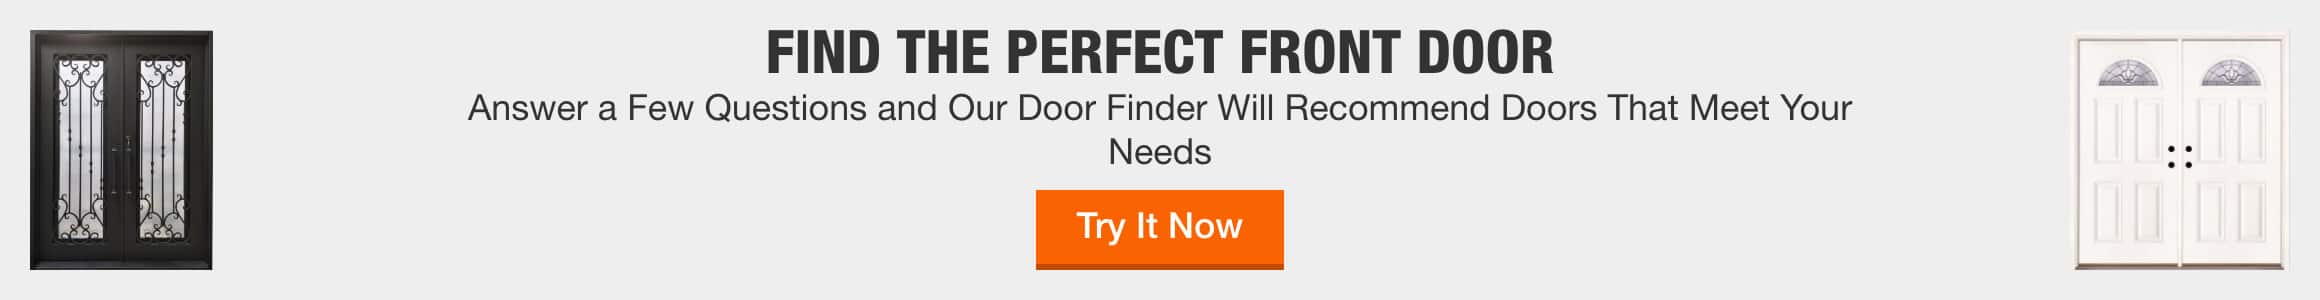 FIND THE PERFECT FRONT DOOR - Answer a Few Questions and Our Door Finder Will Recommend Doors That Meet Your Needs > Try It Now